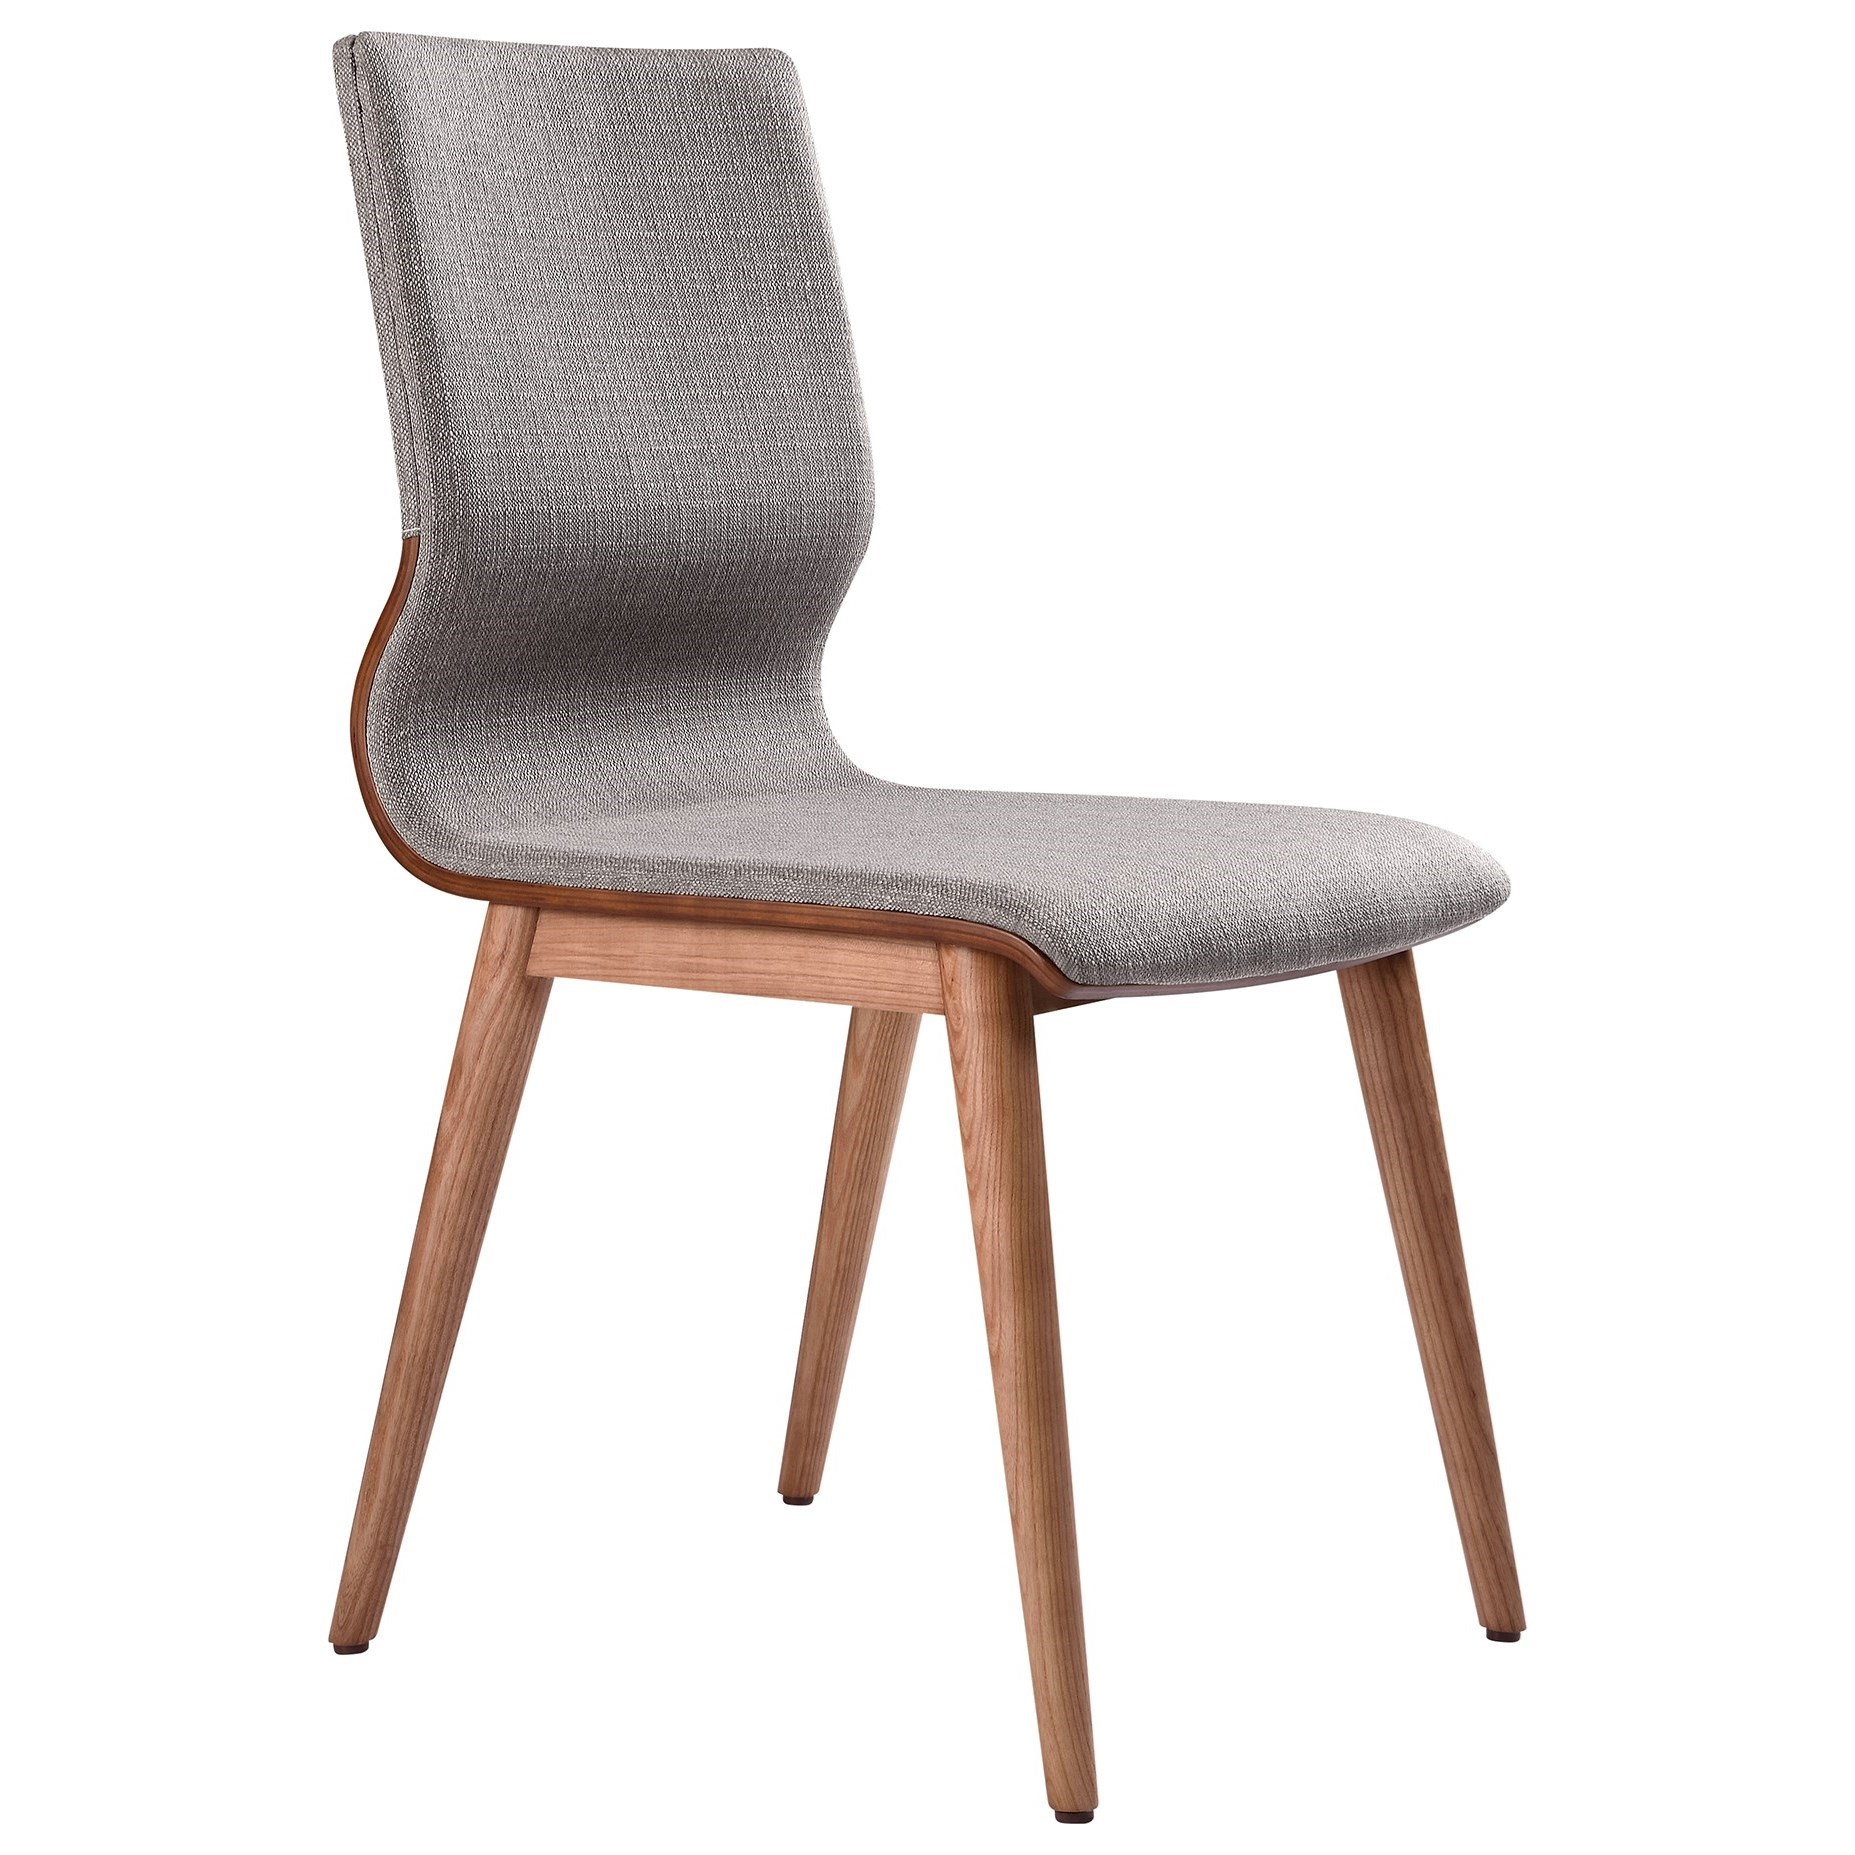 Robin Mid-Century Dining Chair - Set of 2 at Sadler's Home Furnishings